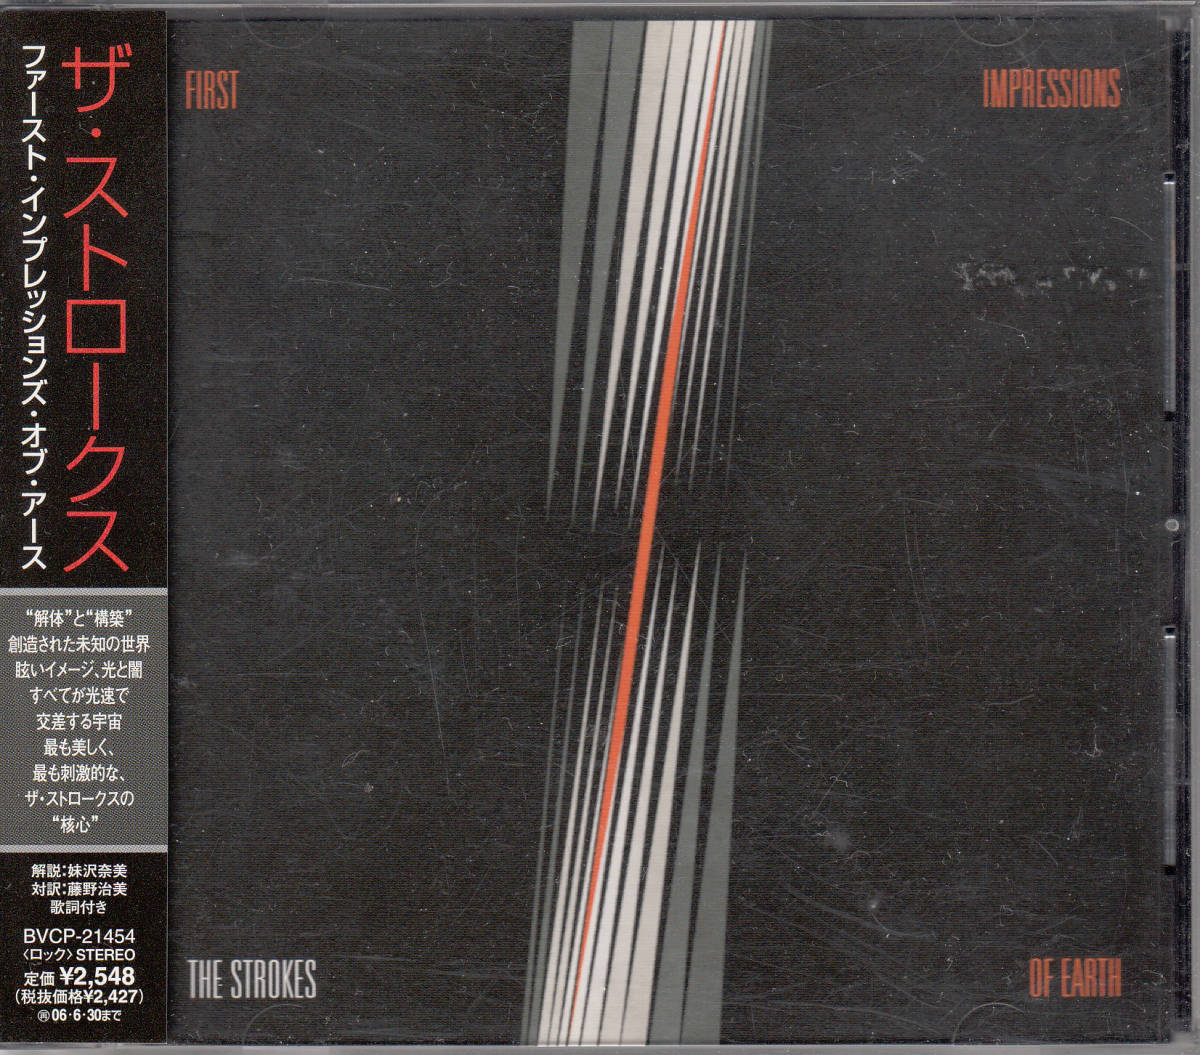 THE STROKES/FIAST IMPRESSIONS OF EARTH 帯付国内盤CD